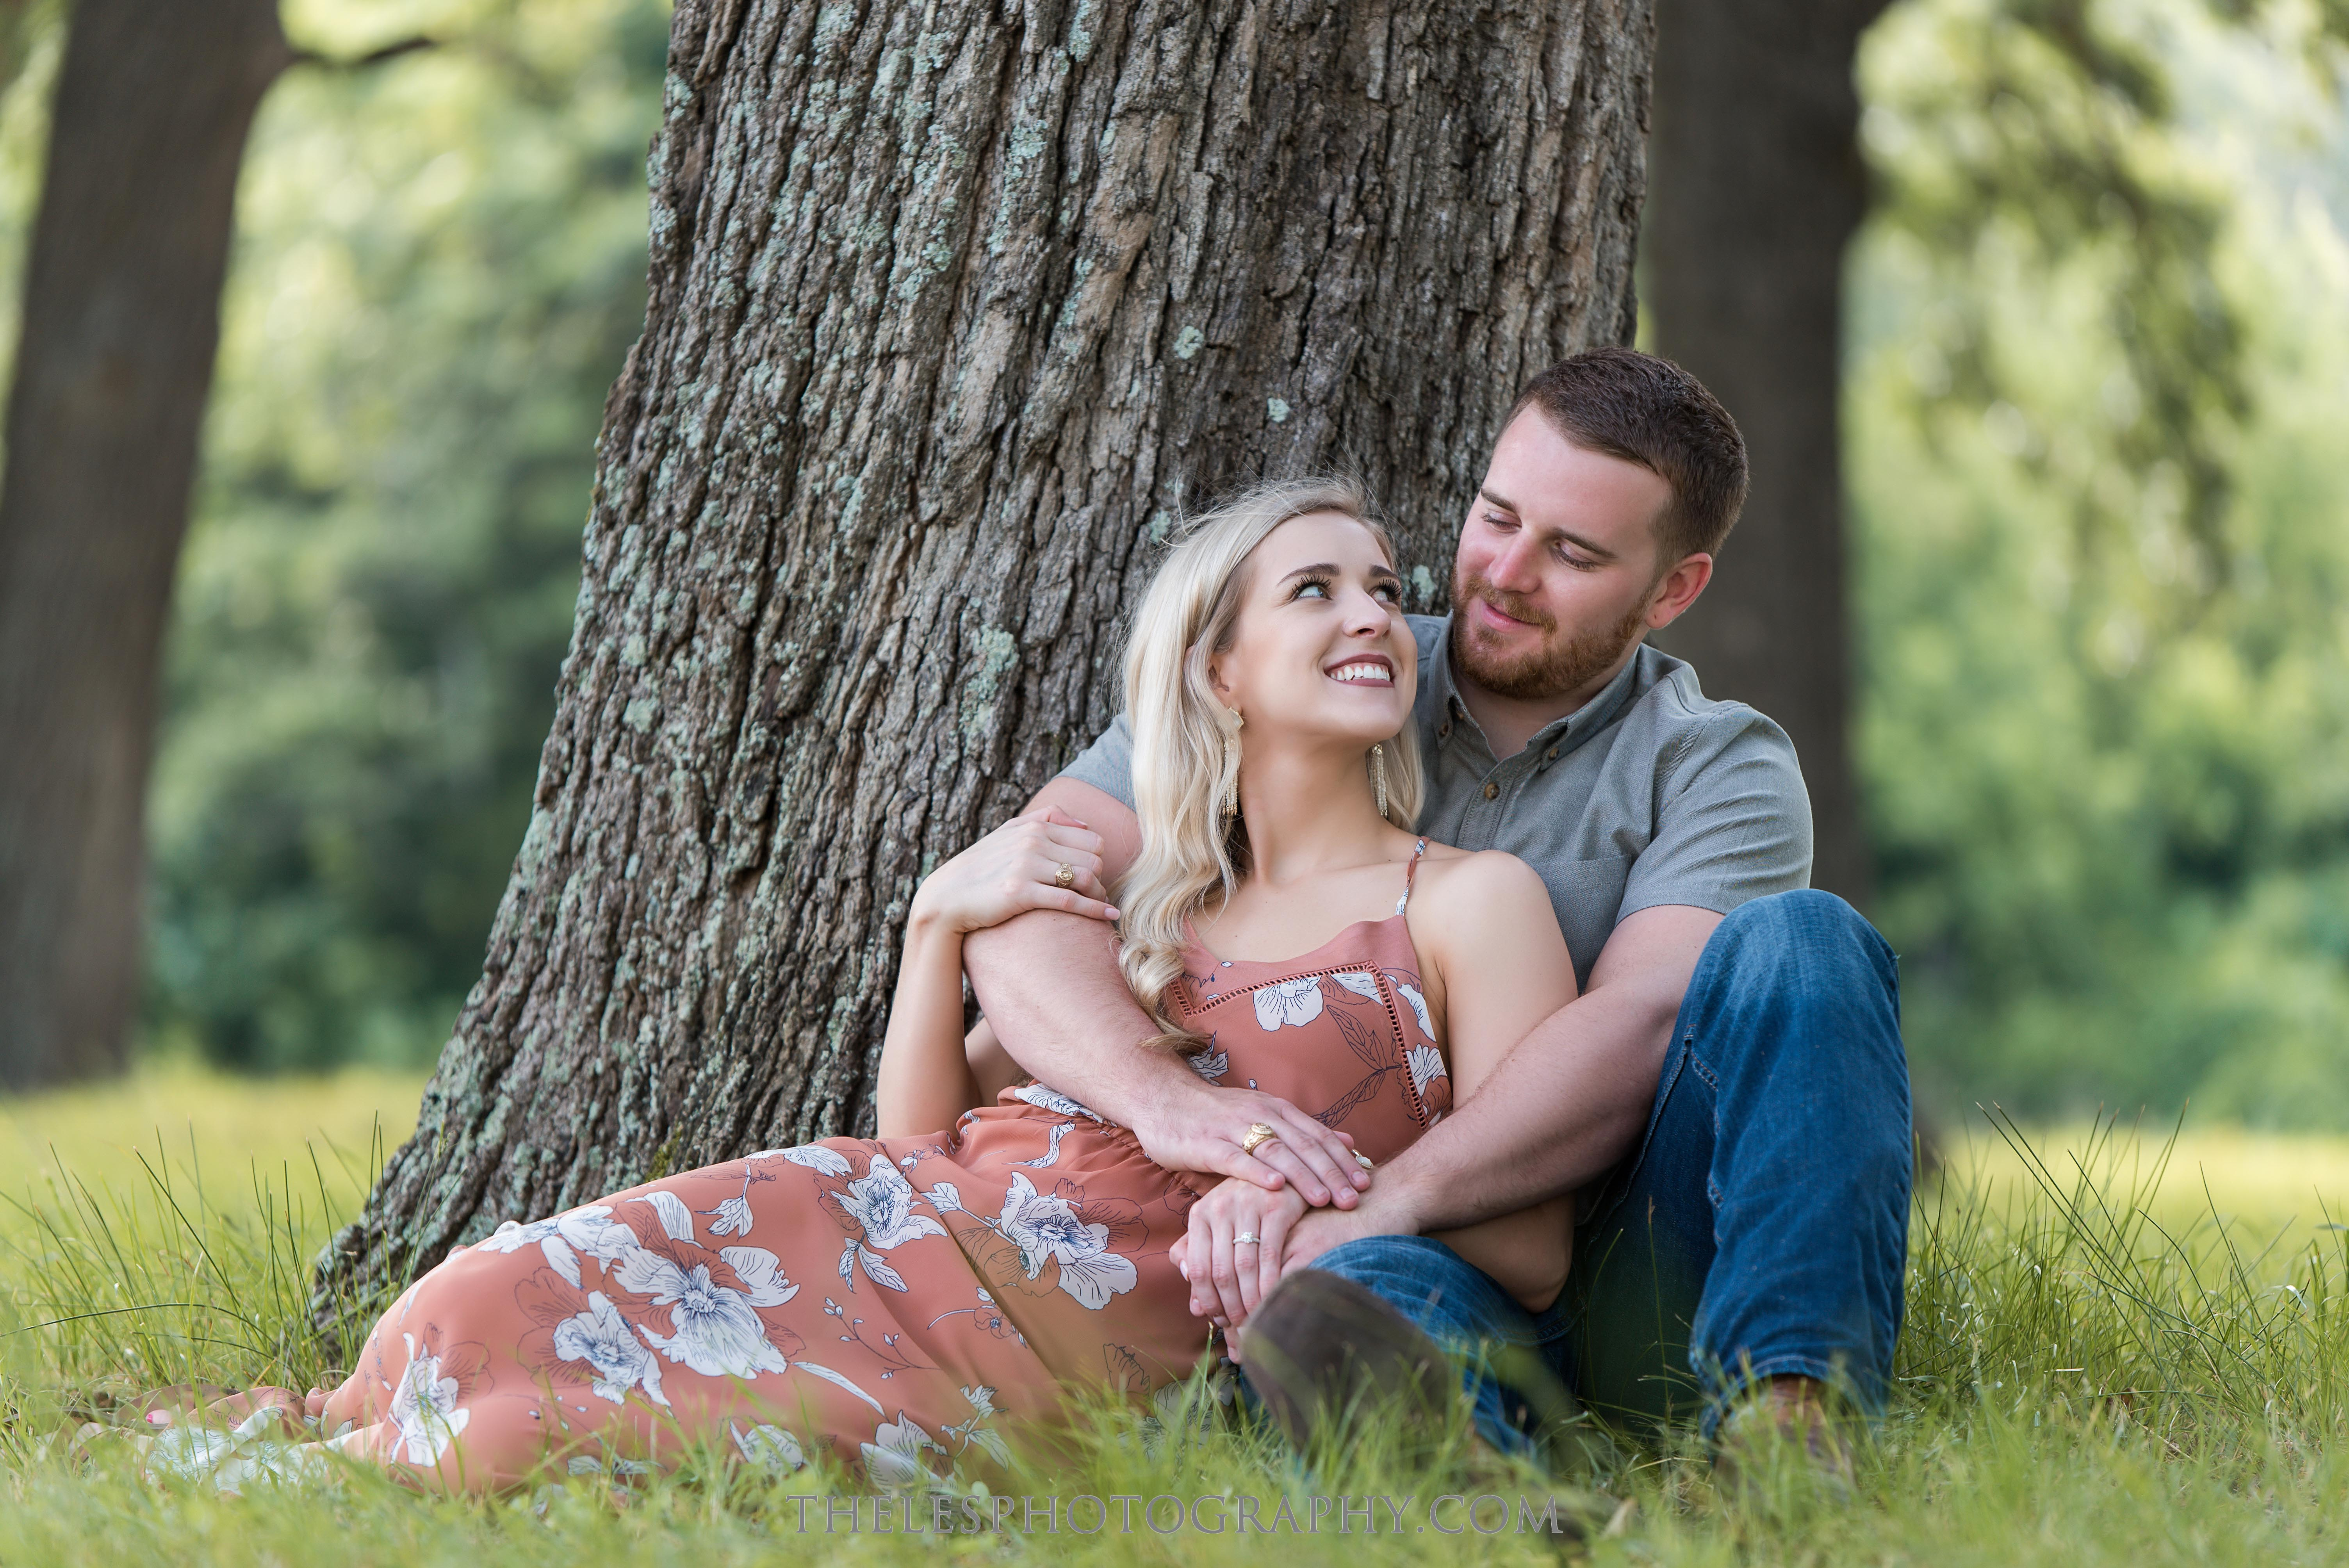 The Les Photography - Dallas Wedding Photographer - Trinity Groves Engagement - Haley and Noah 13